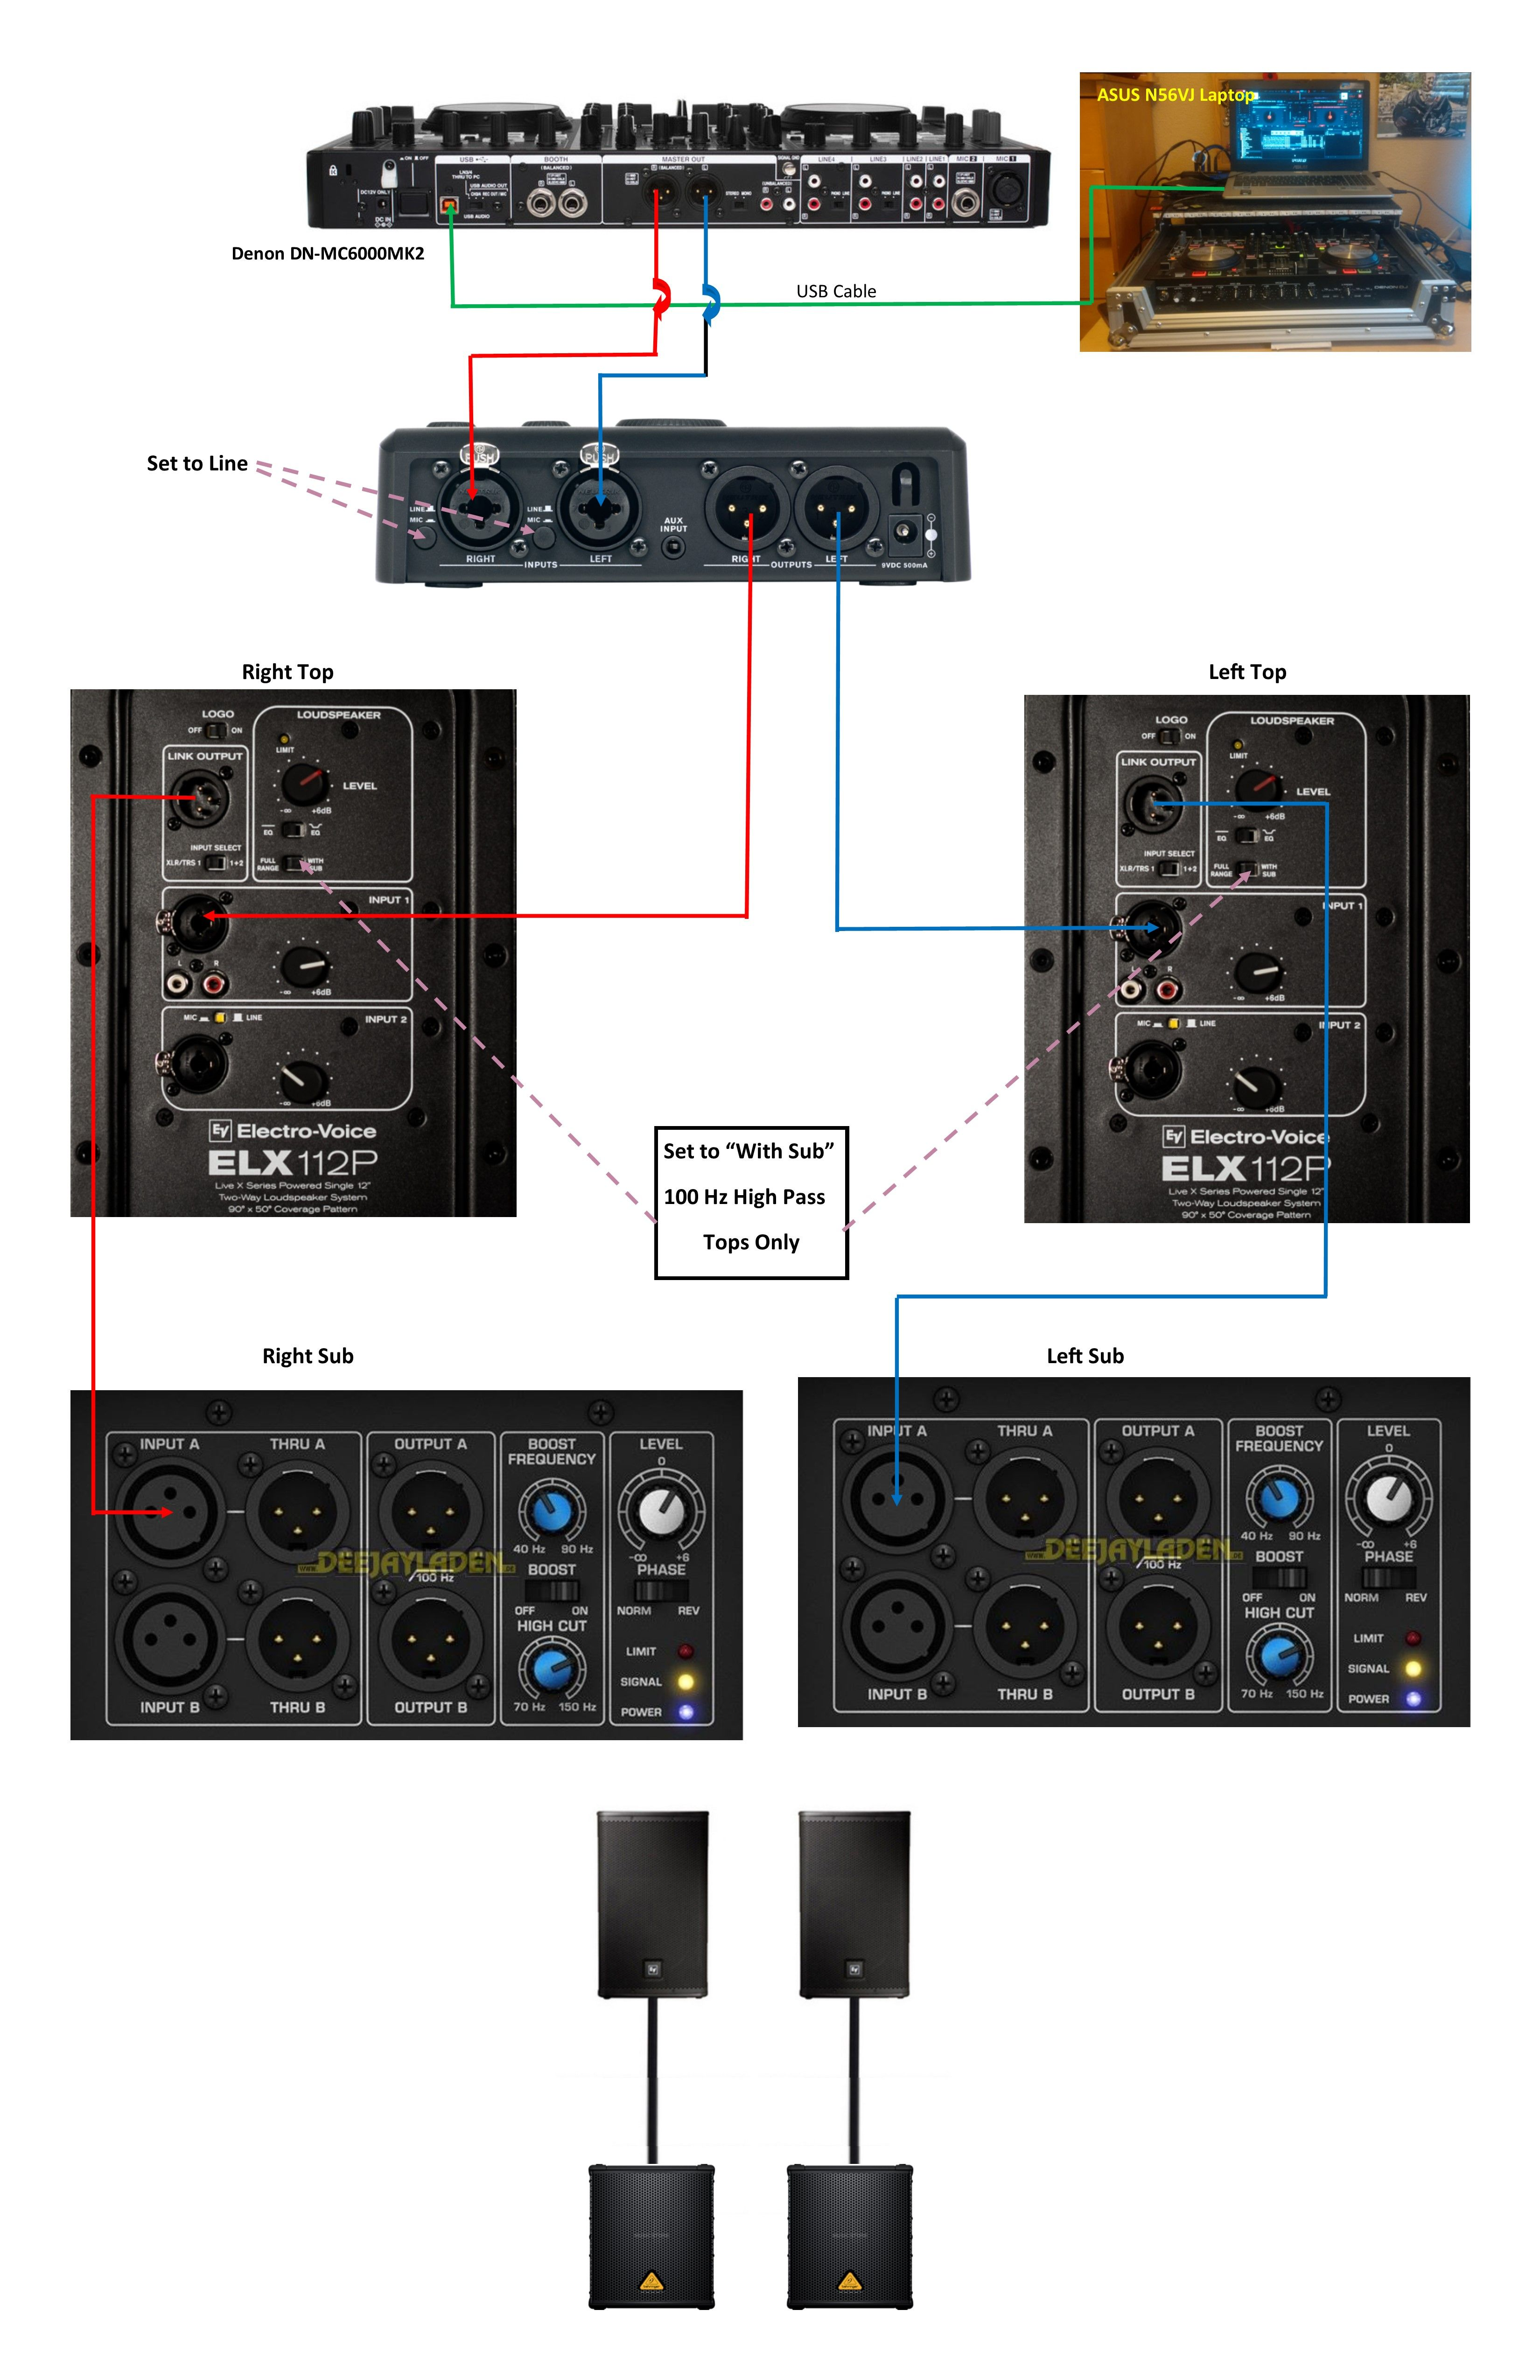 DJ_System_Config_Denon MC6000MK2 With Subs